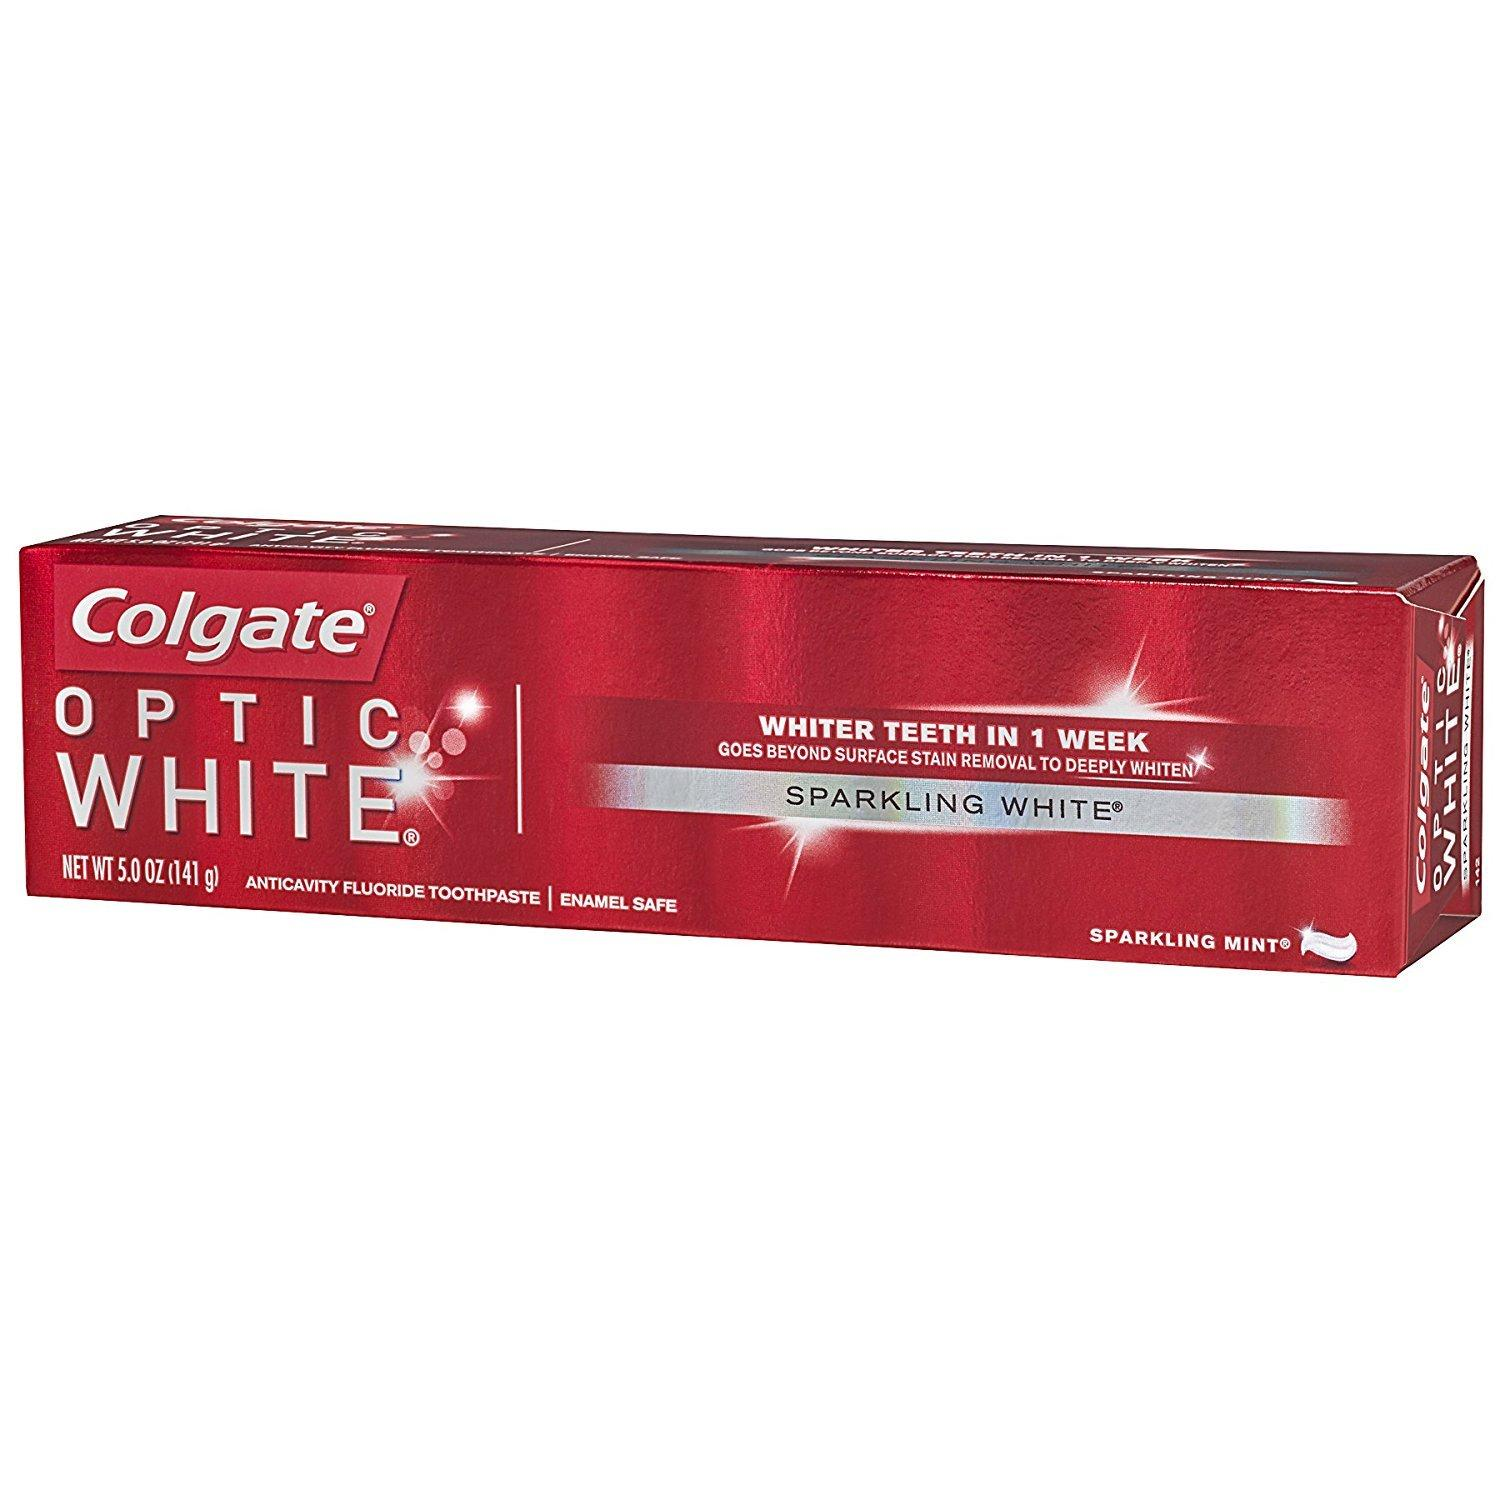 Colgate Optic White Whitening Toothpaste, Sparkling White, 5 oz